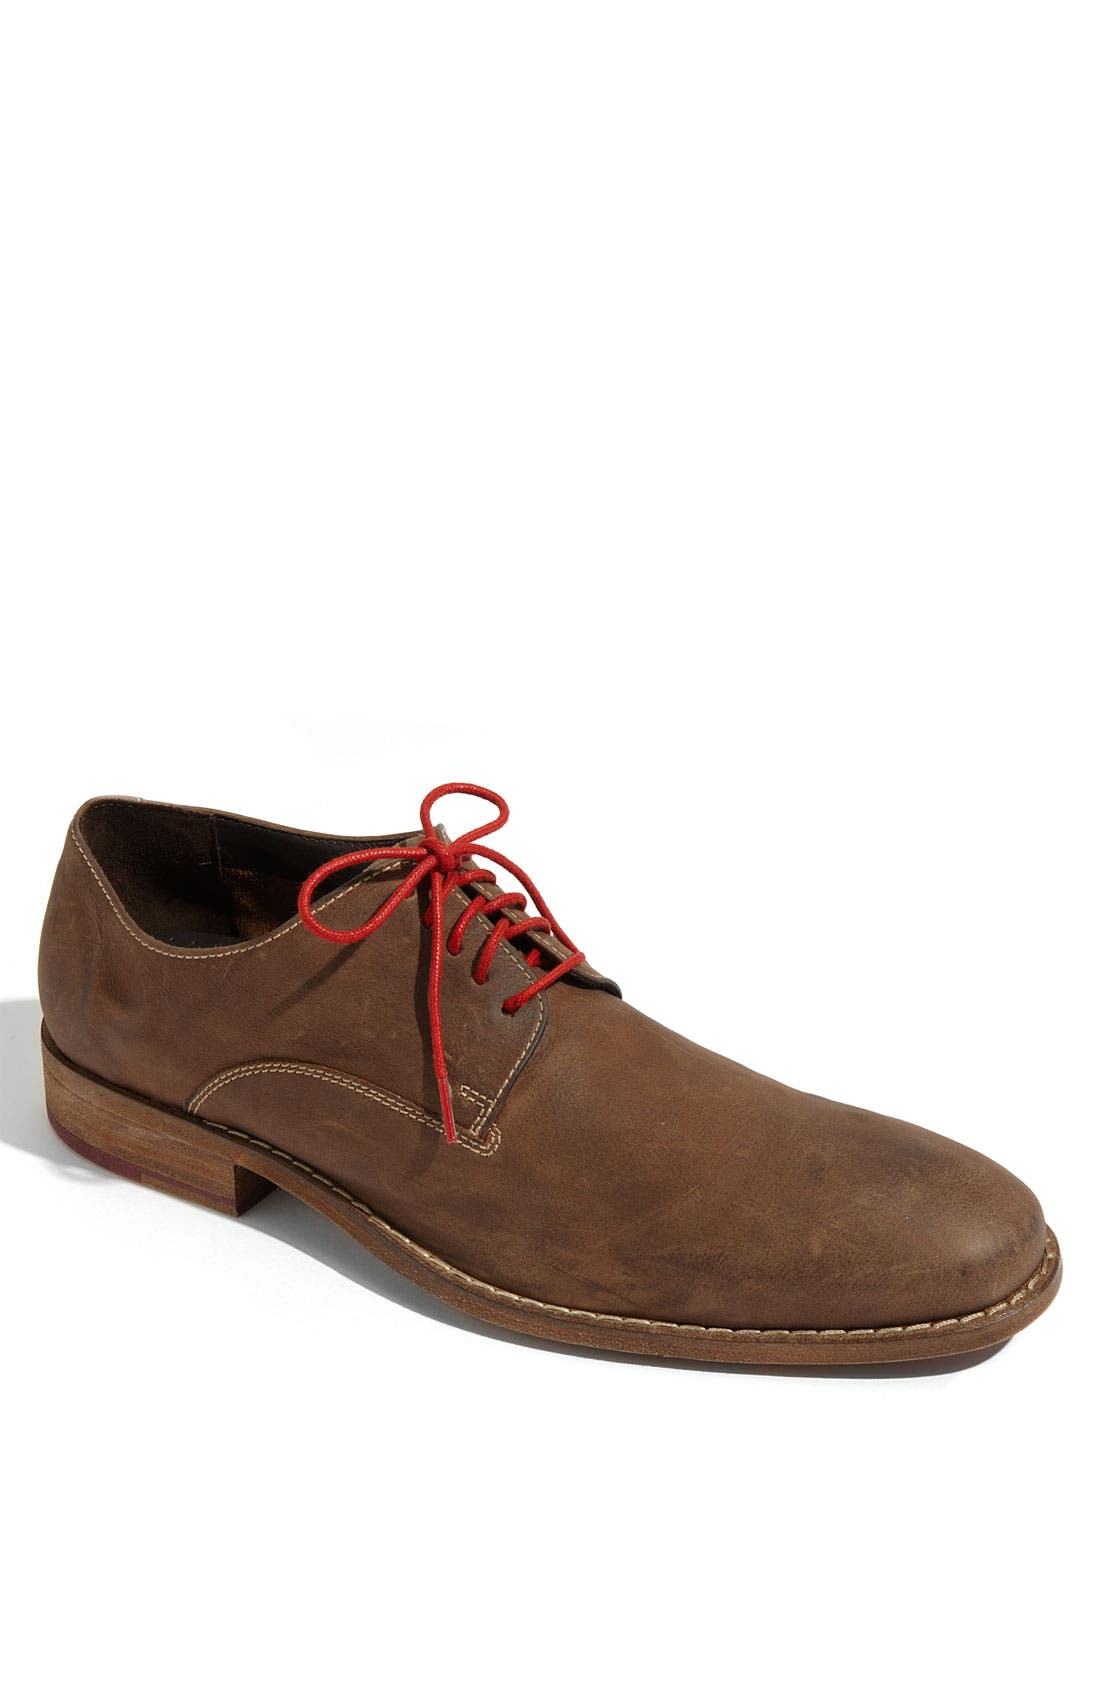 Main Image - Cole Haan 'Air Colton' Casual Oxford   (Men)